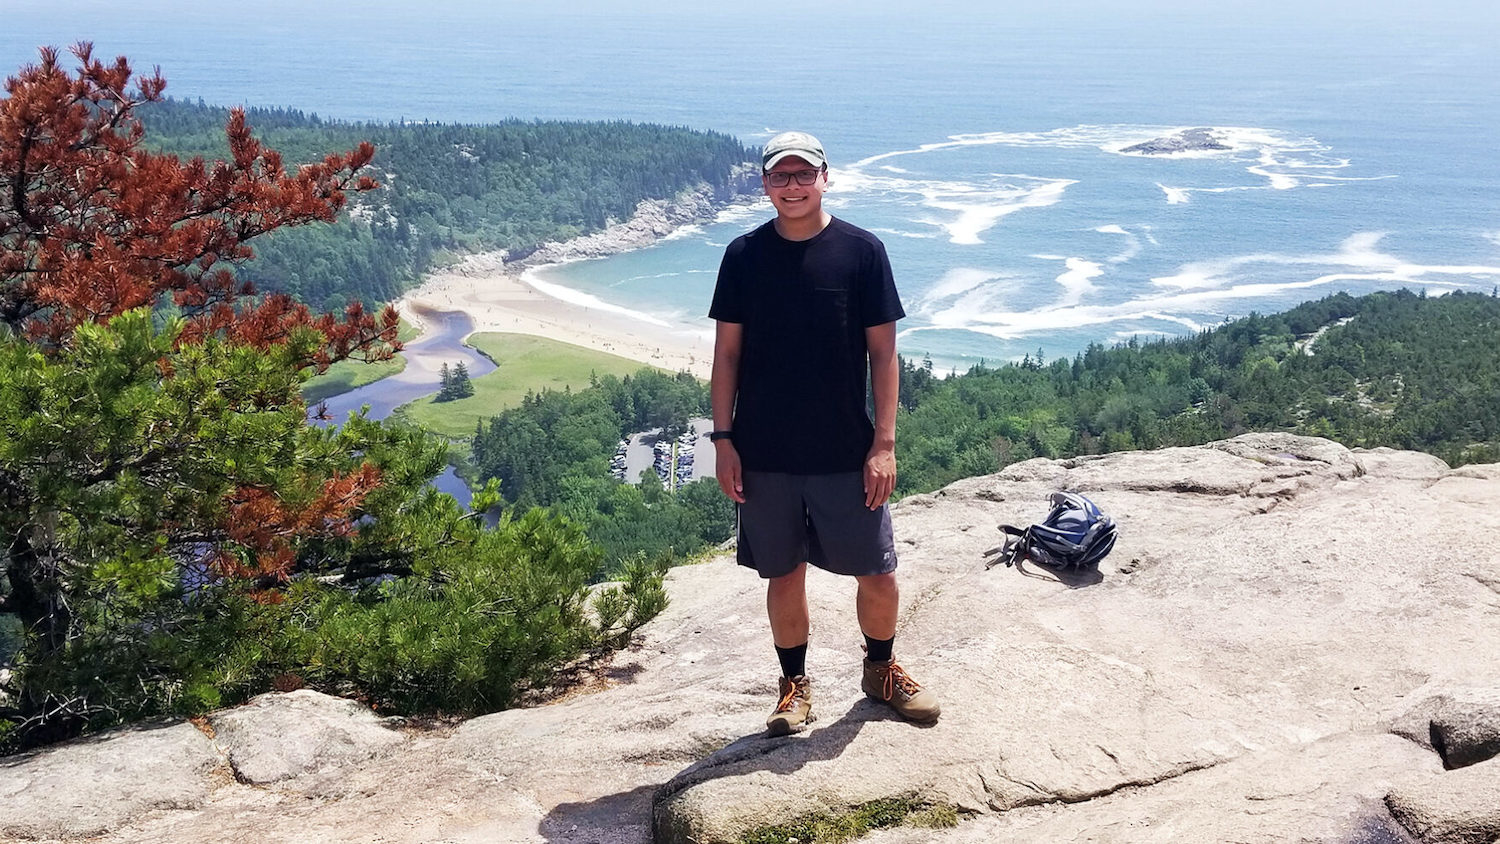 Nikhil Milind standing on a mountain overlooking the ocean